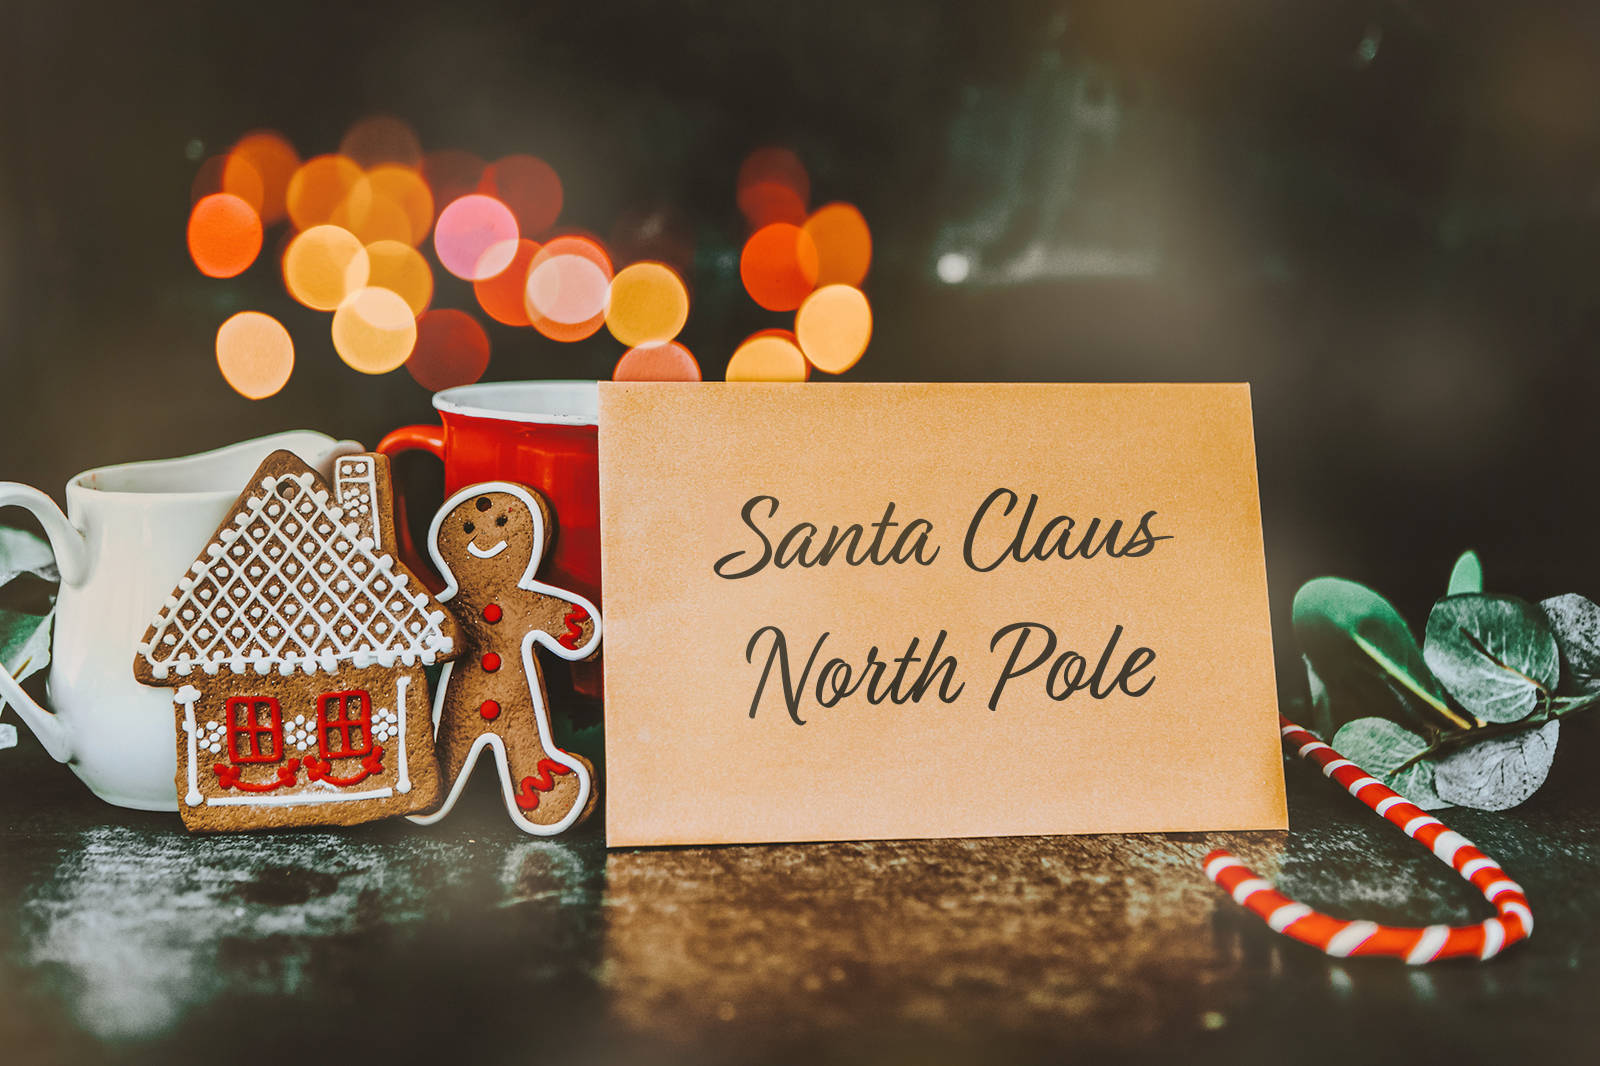 Santa Claus Mailing Address: Letters From the North Pole | LoveToKnow